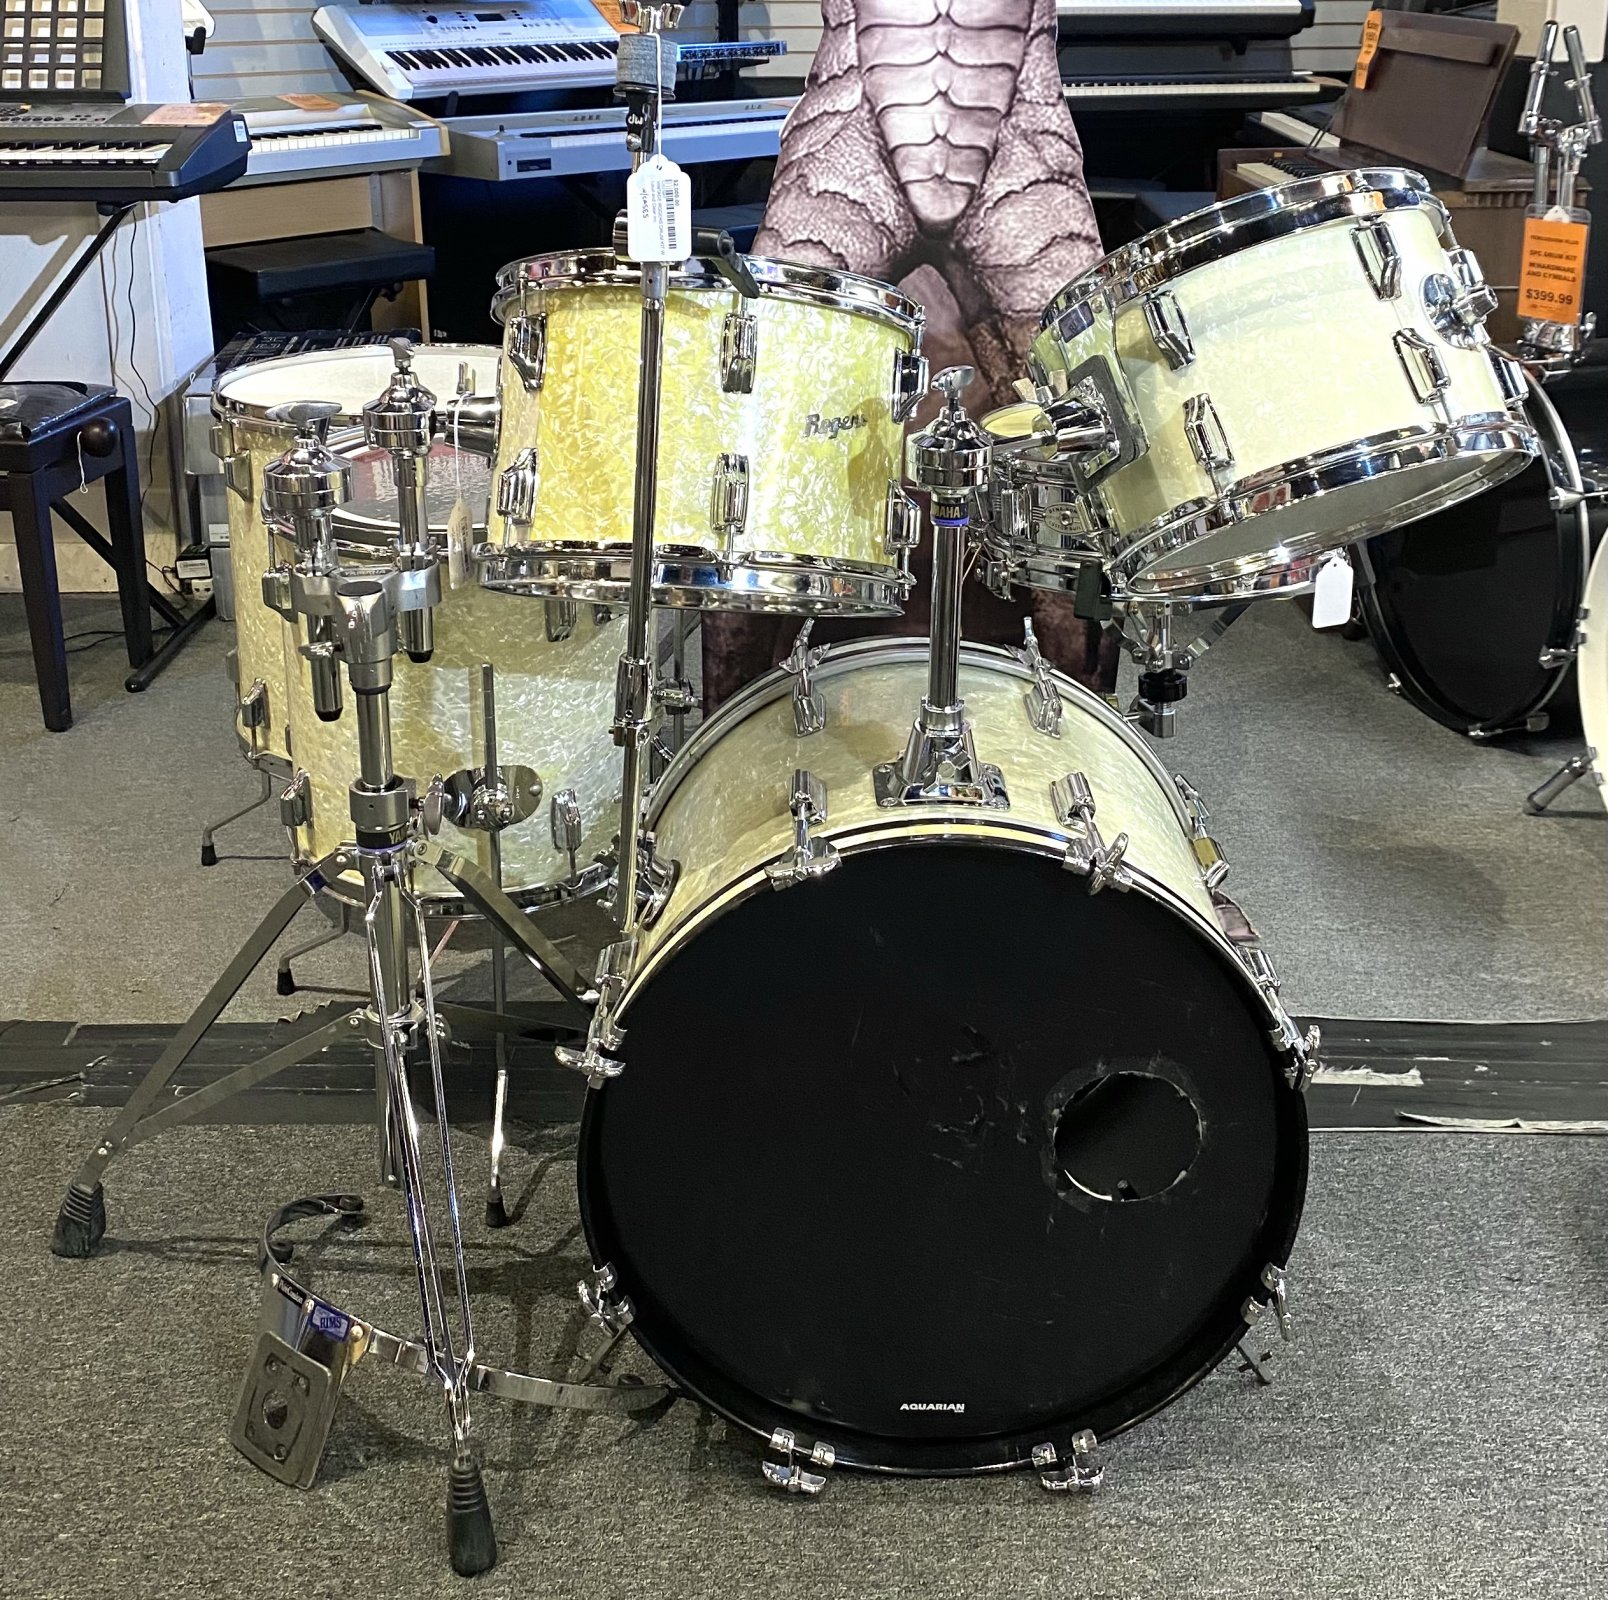 VINTAGE ROGERS DRUM KIT W CASES, 6-PIECE, EARLY 70'S ERA